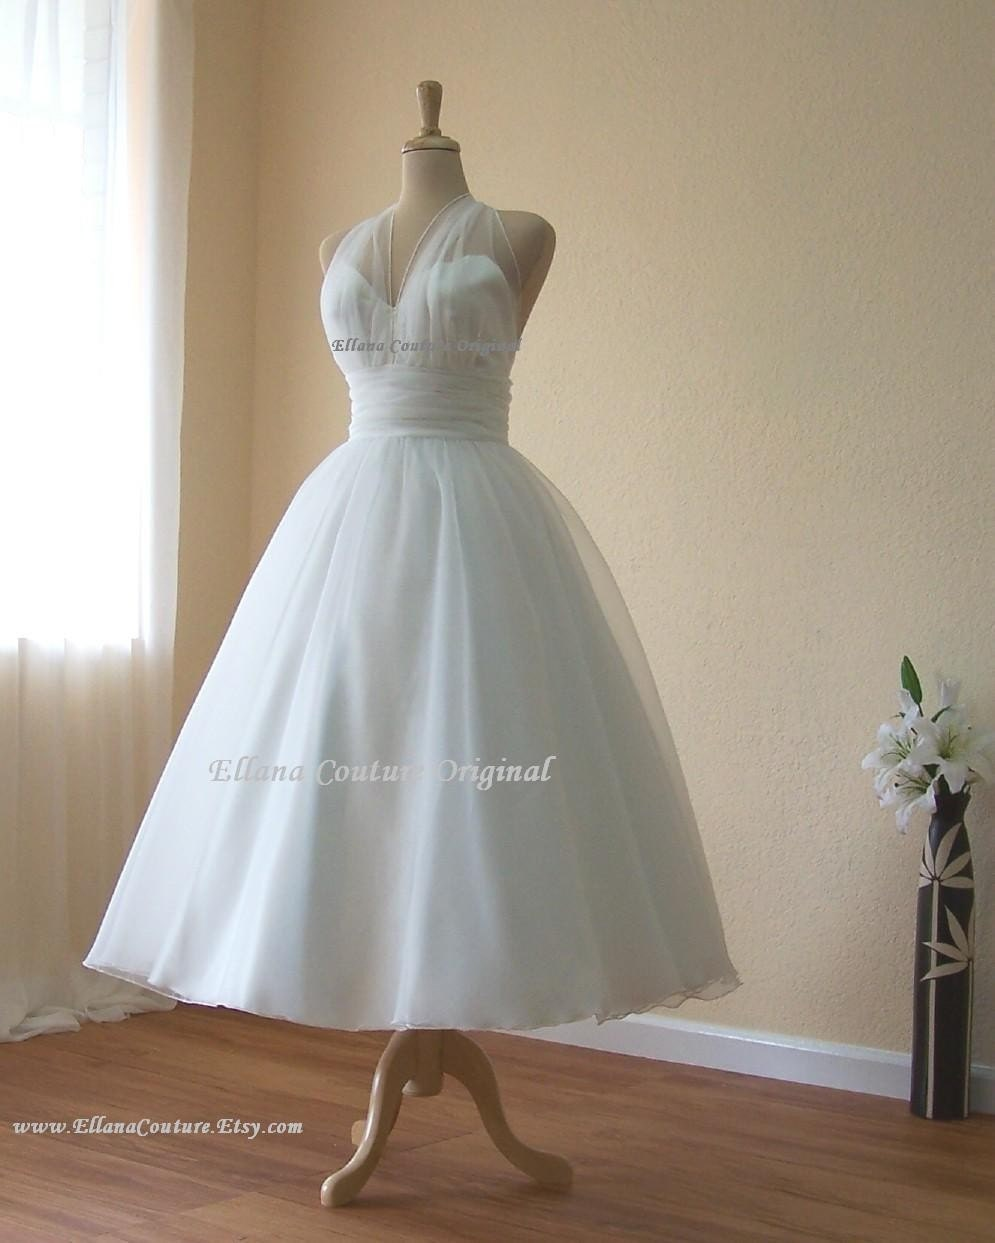 Retro inspired tea length wedding dress vintage style organza for Vintage wedding dresses tea length